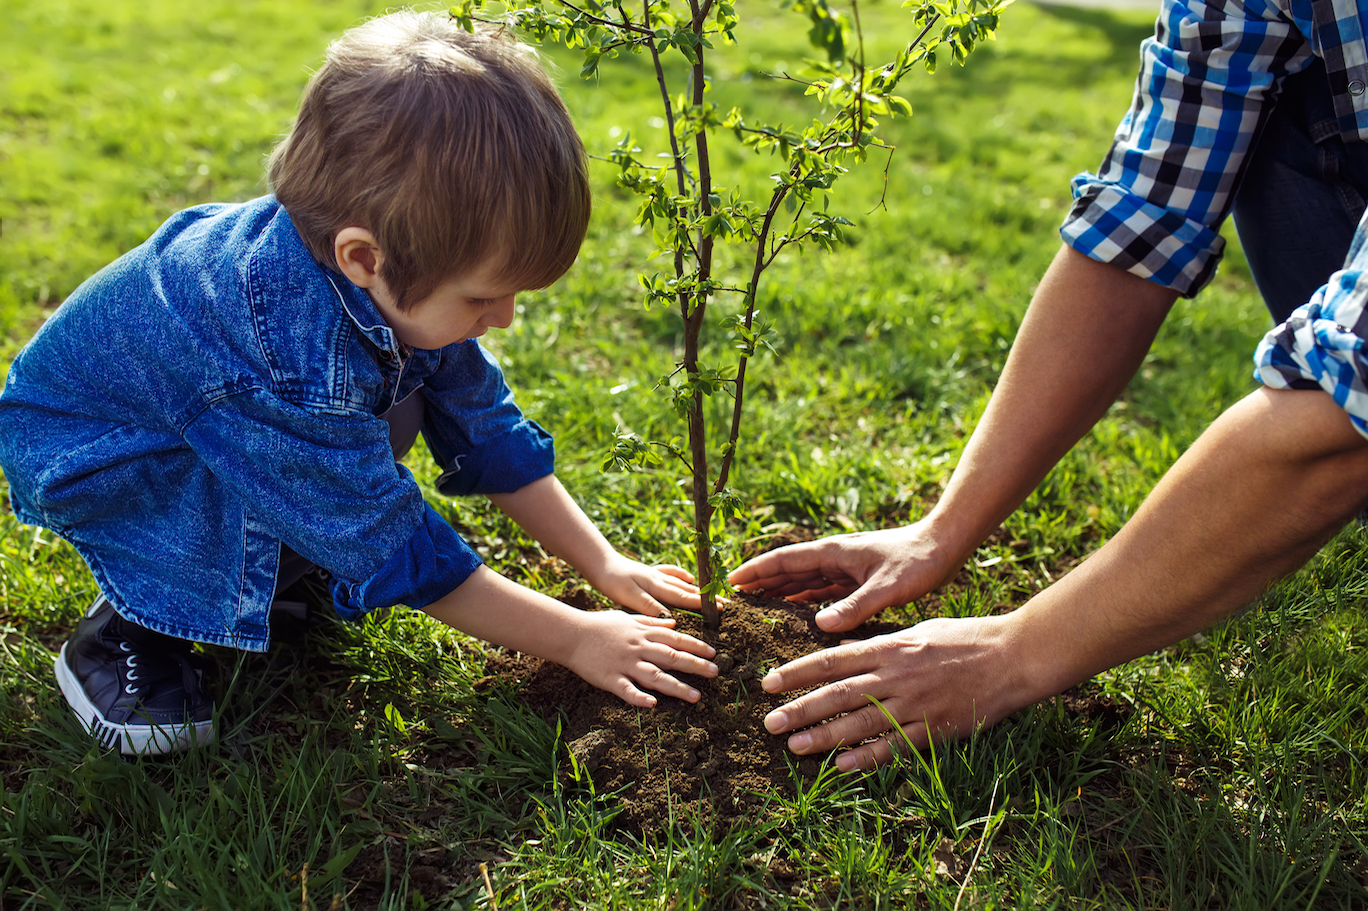 Children become environmentally responsible when they get involved. Here are some fun ways that families can create their own acts of green.